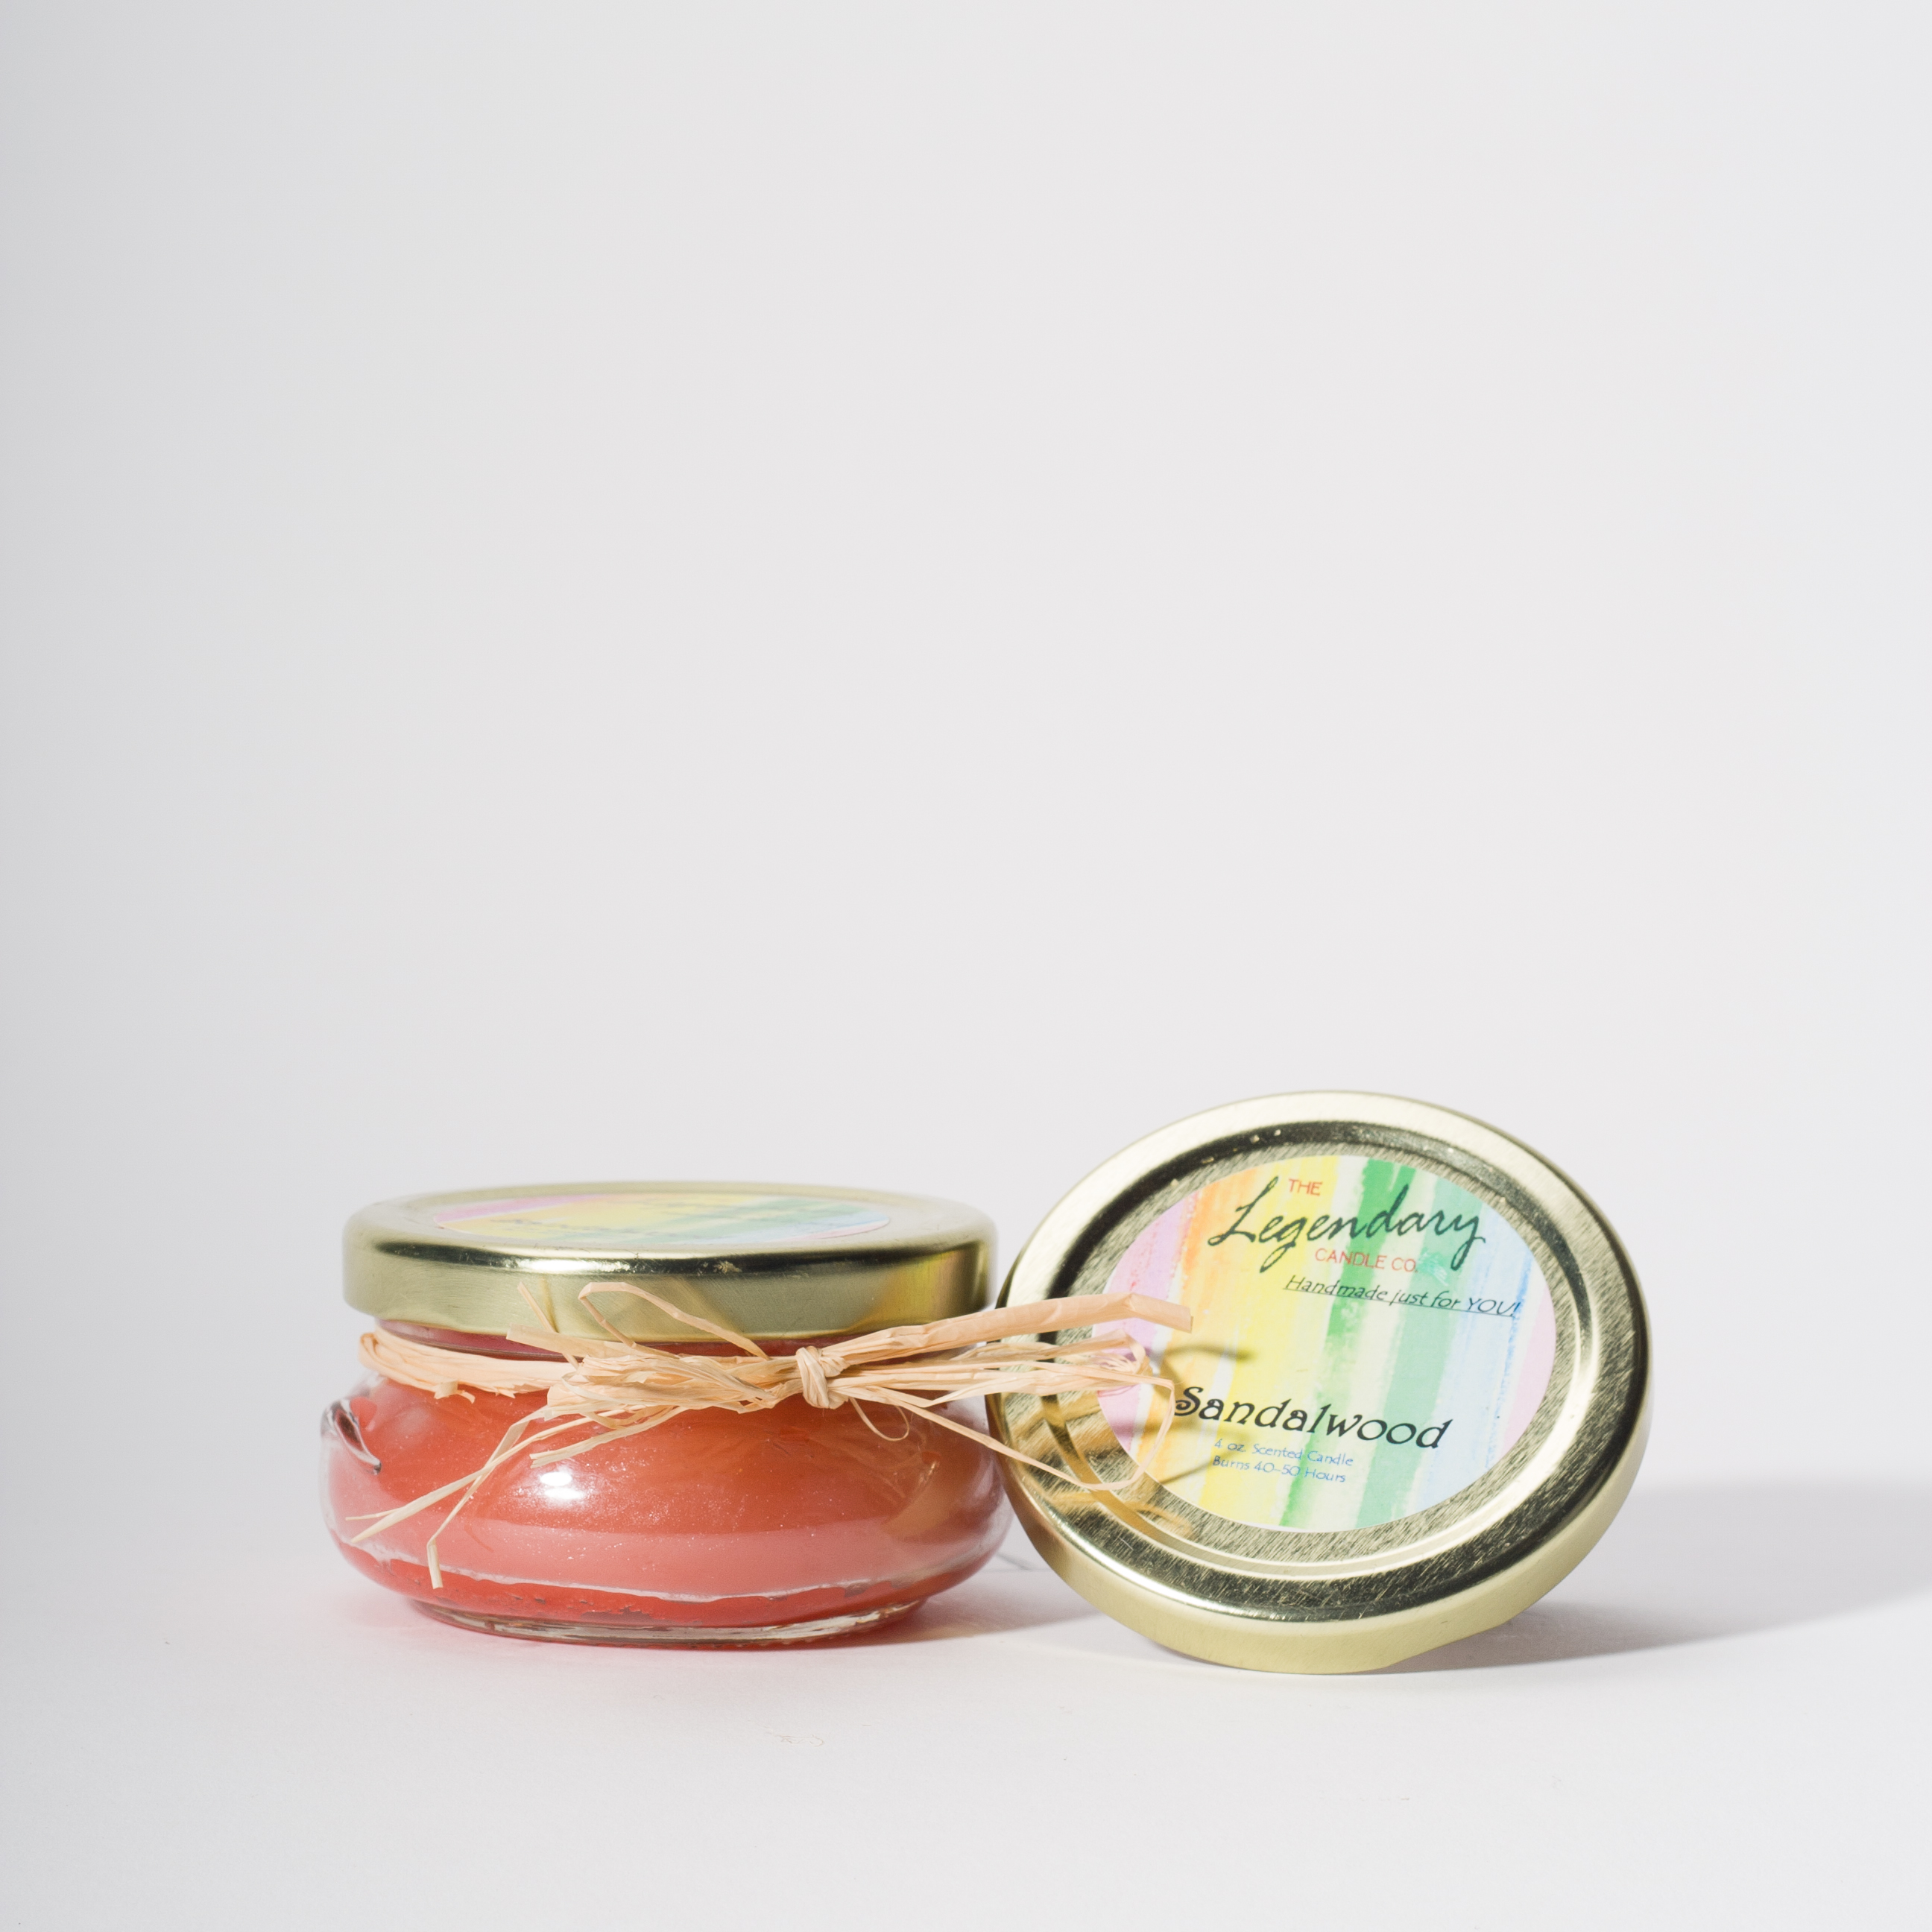 4 Ounce Sandalwood Scented Tureen Jar Candle